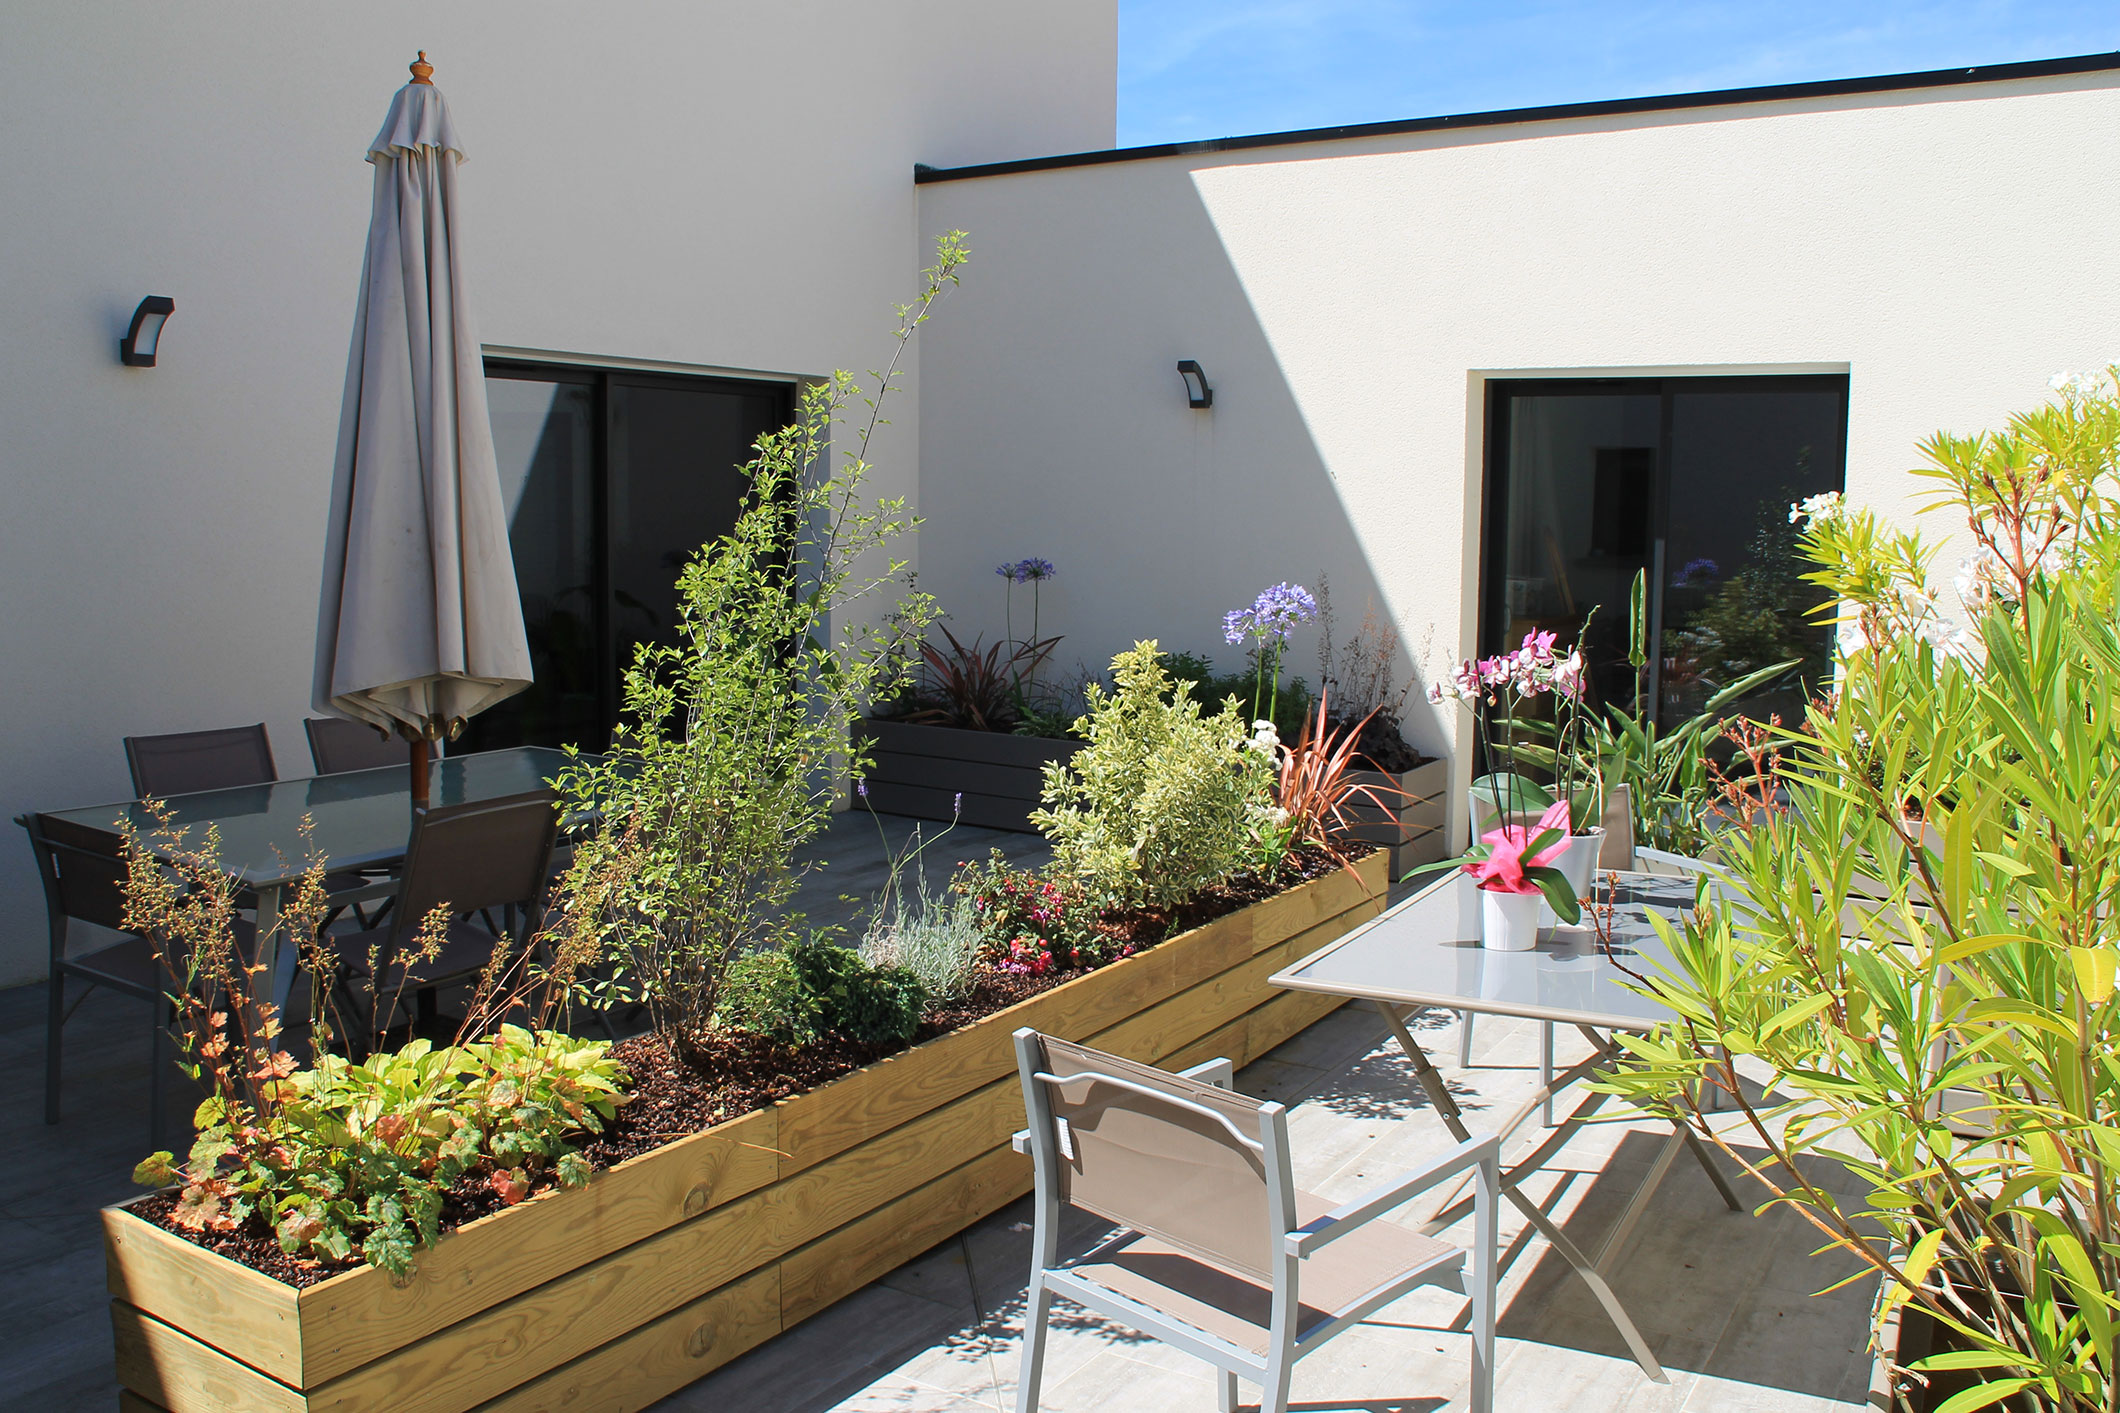 Am nagement ext rieur maison orl ans loiret 45 hegy paysage for Amenagement jardin orleans